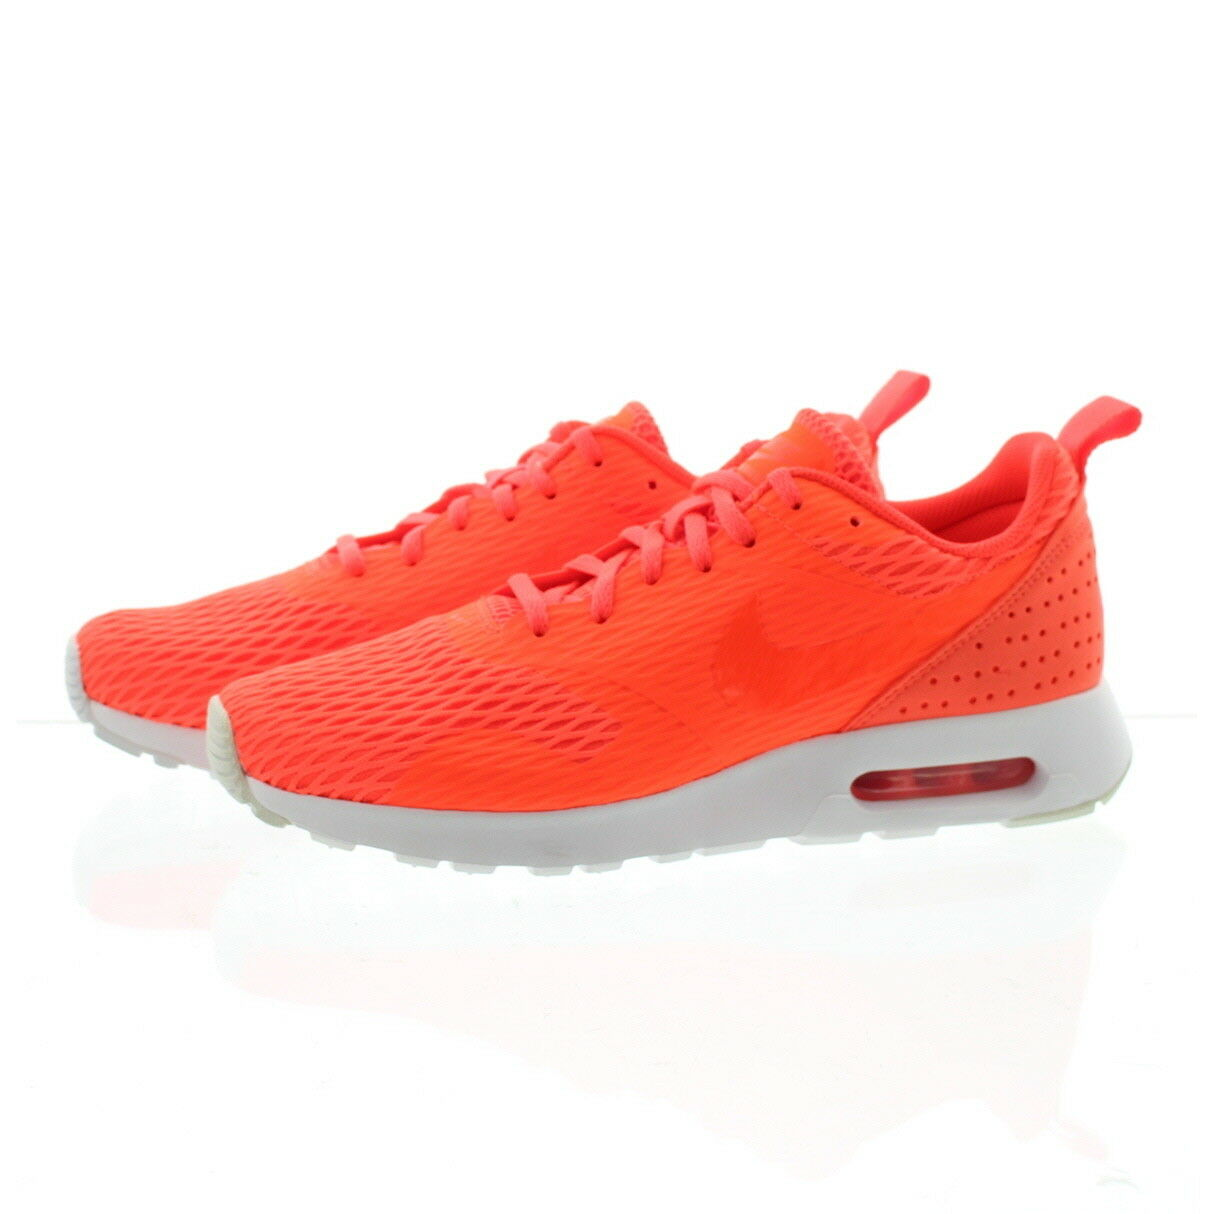 Nike 718895 Mens Air Max Tavas Low Top Running Training Active shoes Sneakers